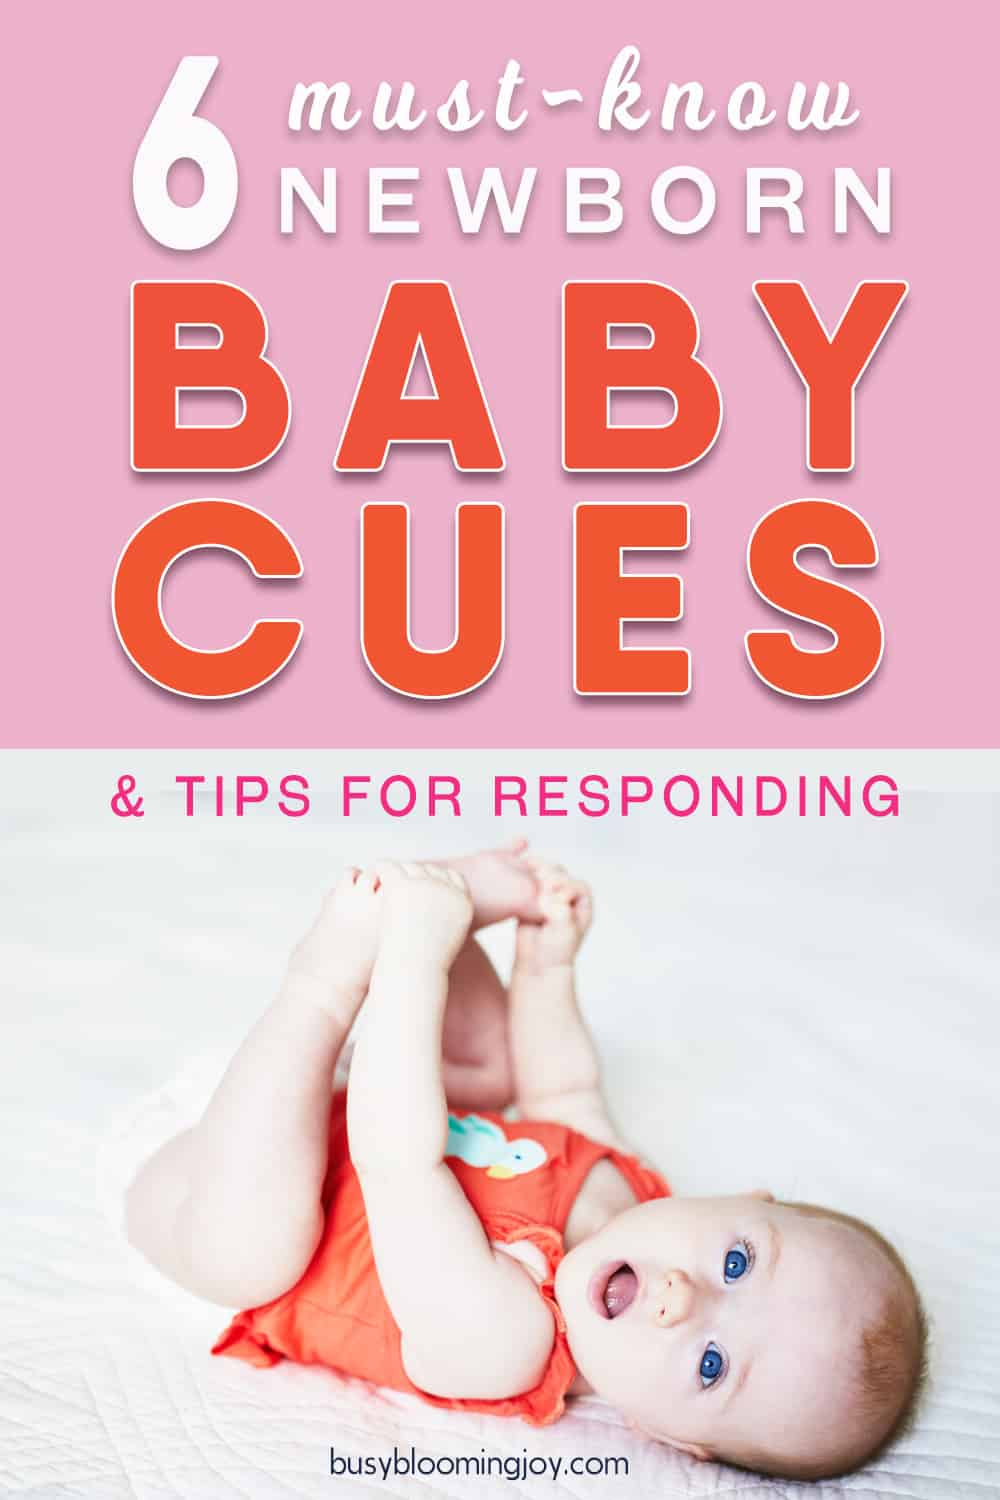 BABY CUES FEATURE